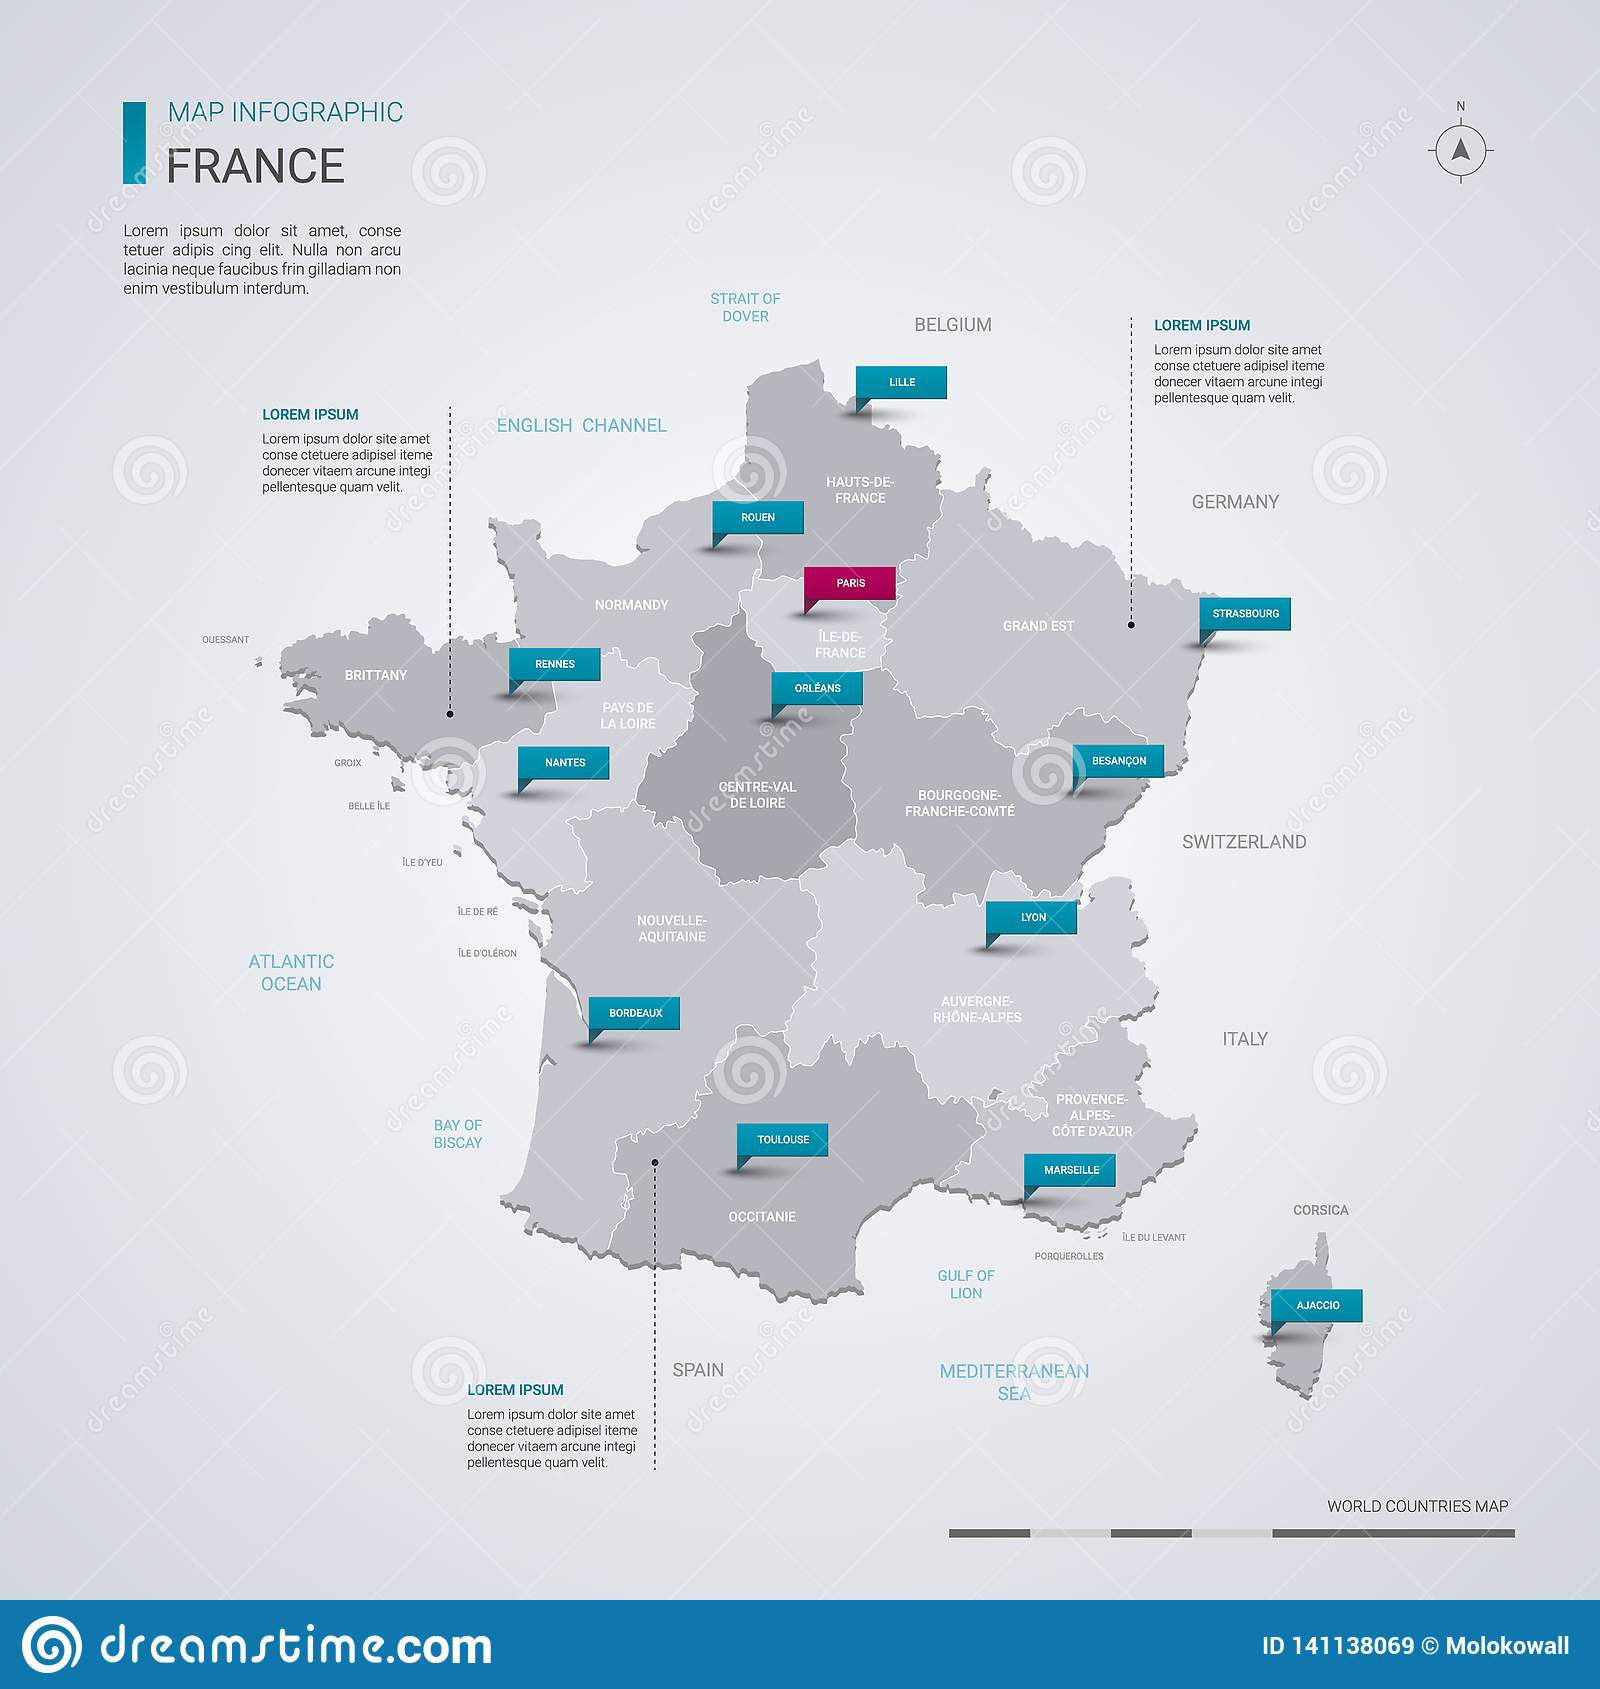 Capital Of France Map.France Vector Map With Infographic Elements Pointer Marks Stock